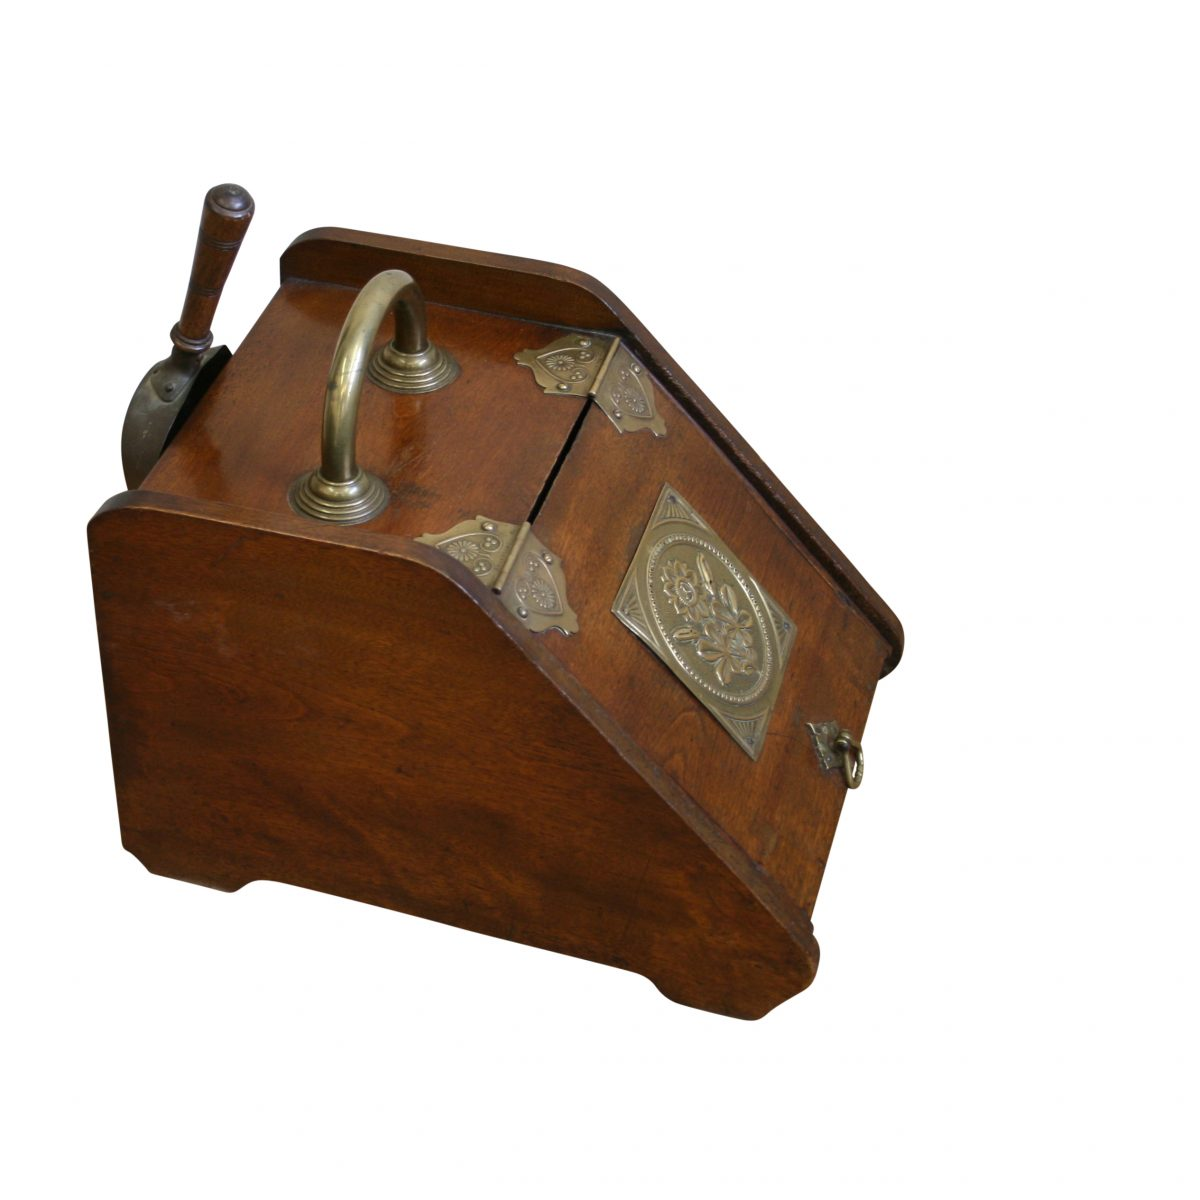 Art Nouveau walnut fireside coal scuttle/williamsantiques